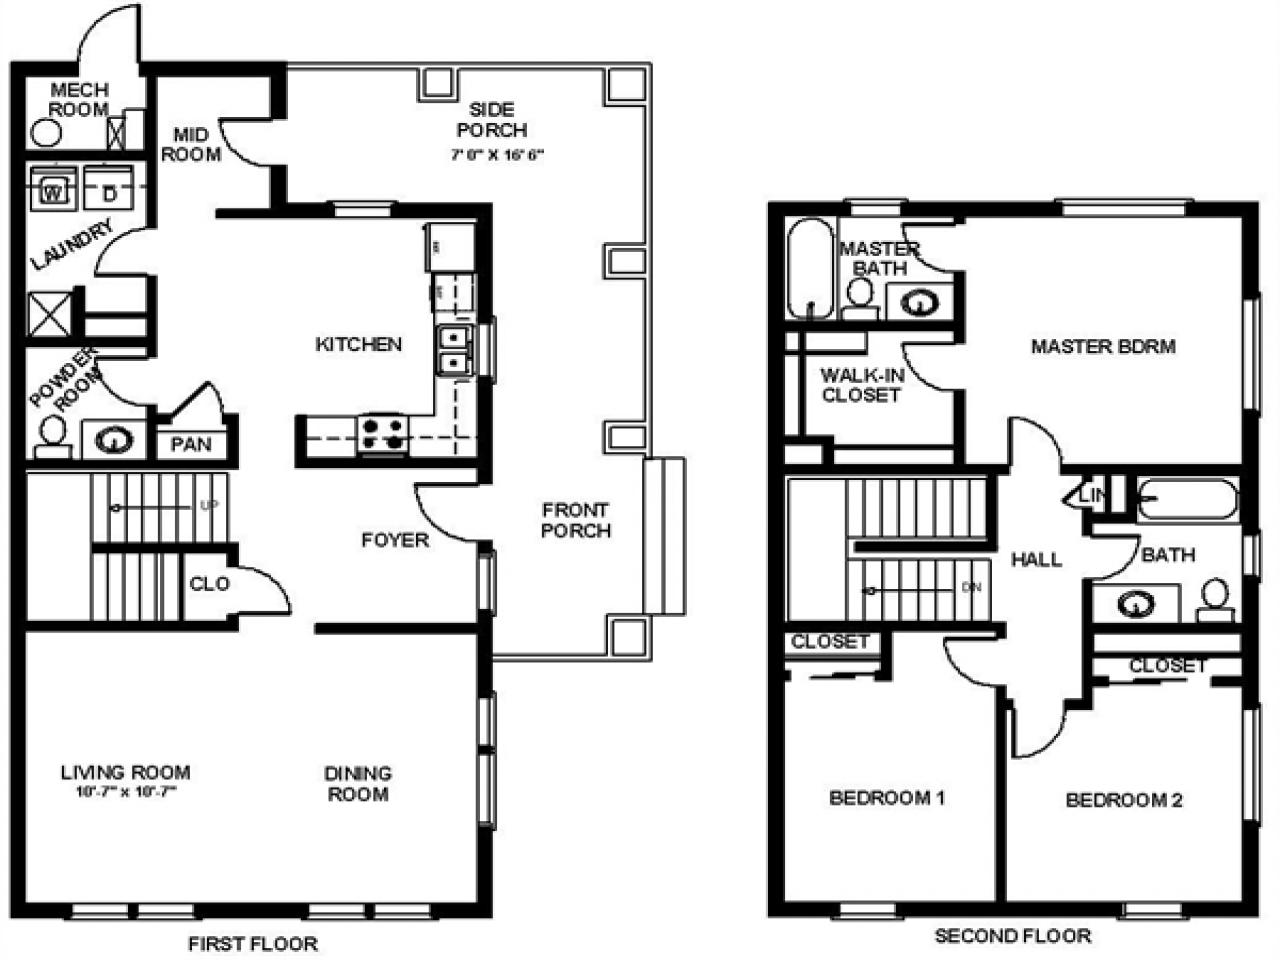 600 Sq Ft Apartment 600 Square Foot Apartment Layout 600 Sq Ft Apartment Floor